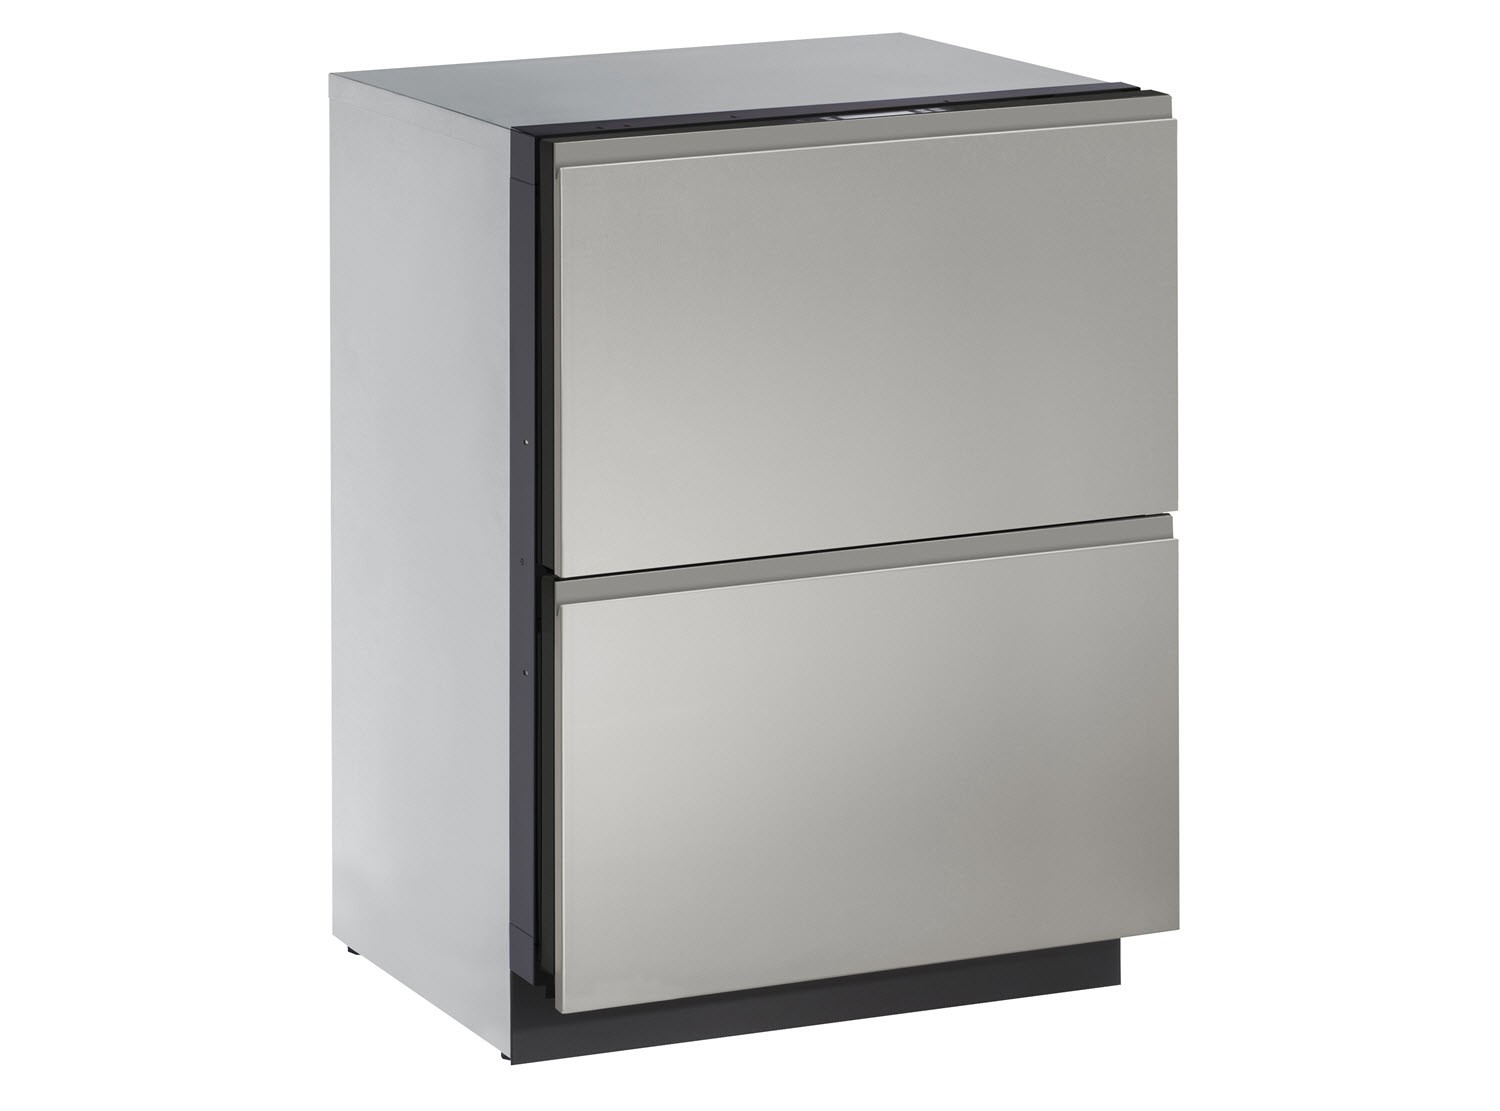 "U-Line Euro Style Handleless Panel, 24"" Solid Drawers"